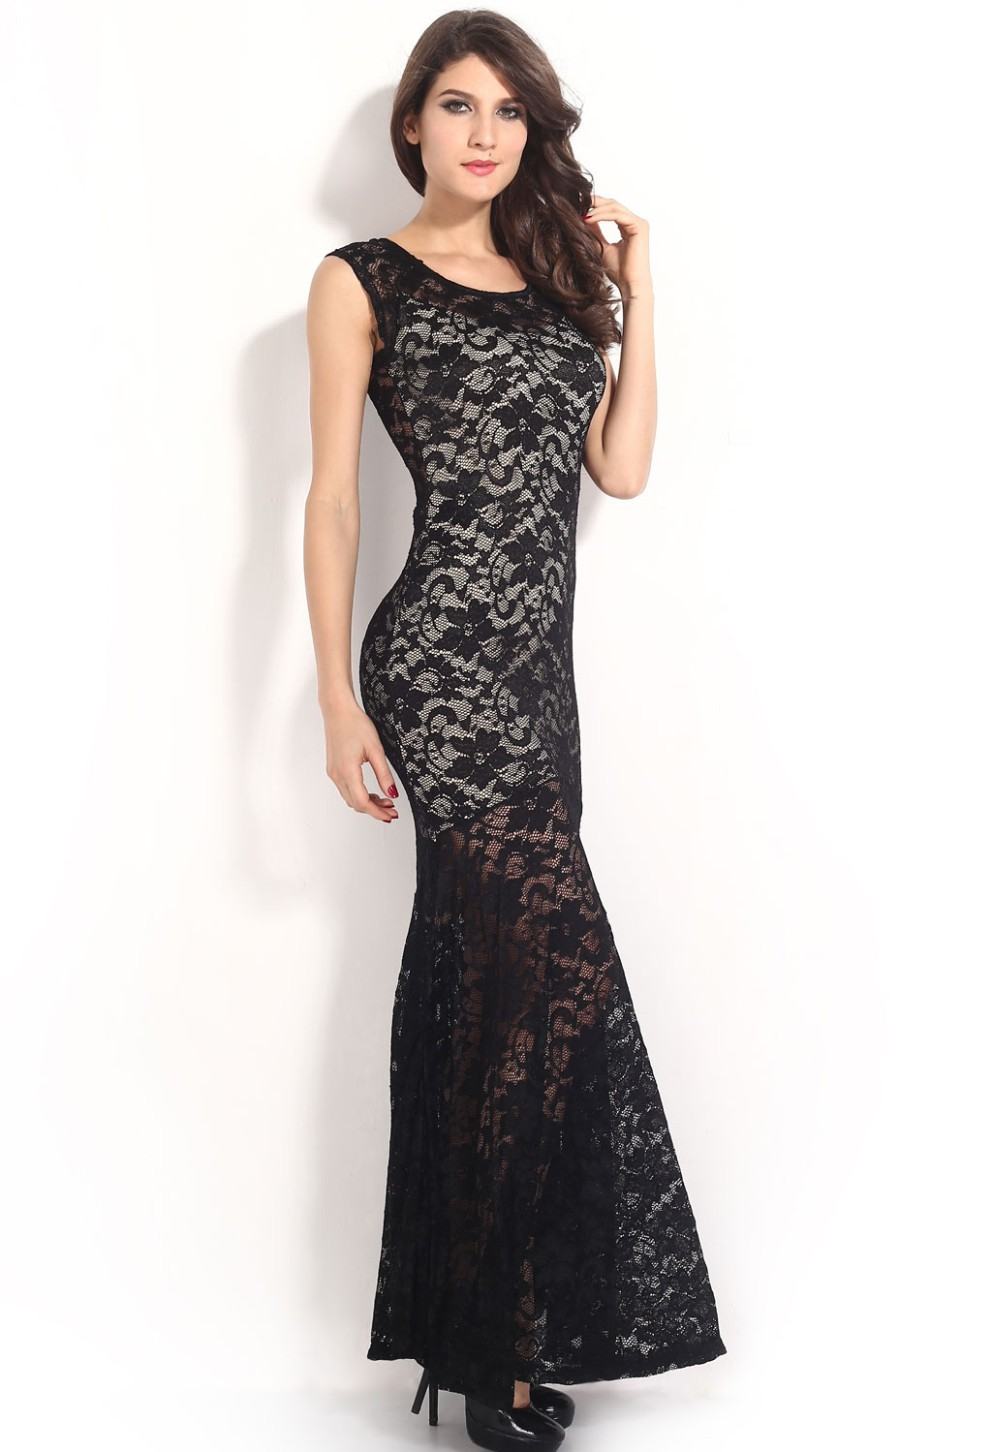 Two-toned-Sexy-Lined-Long-Lace-Evening-Dress-LC6350-15408